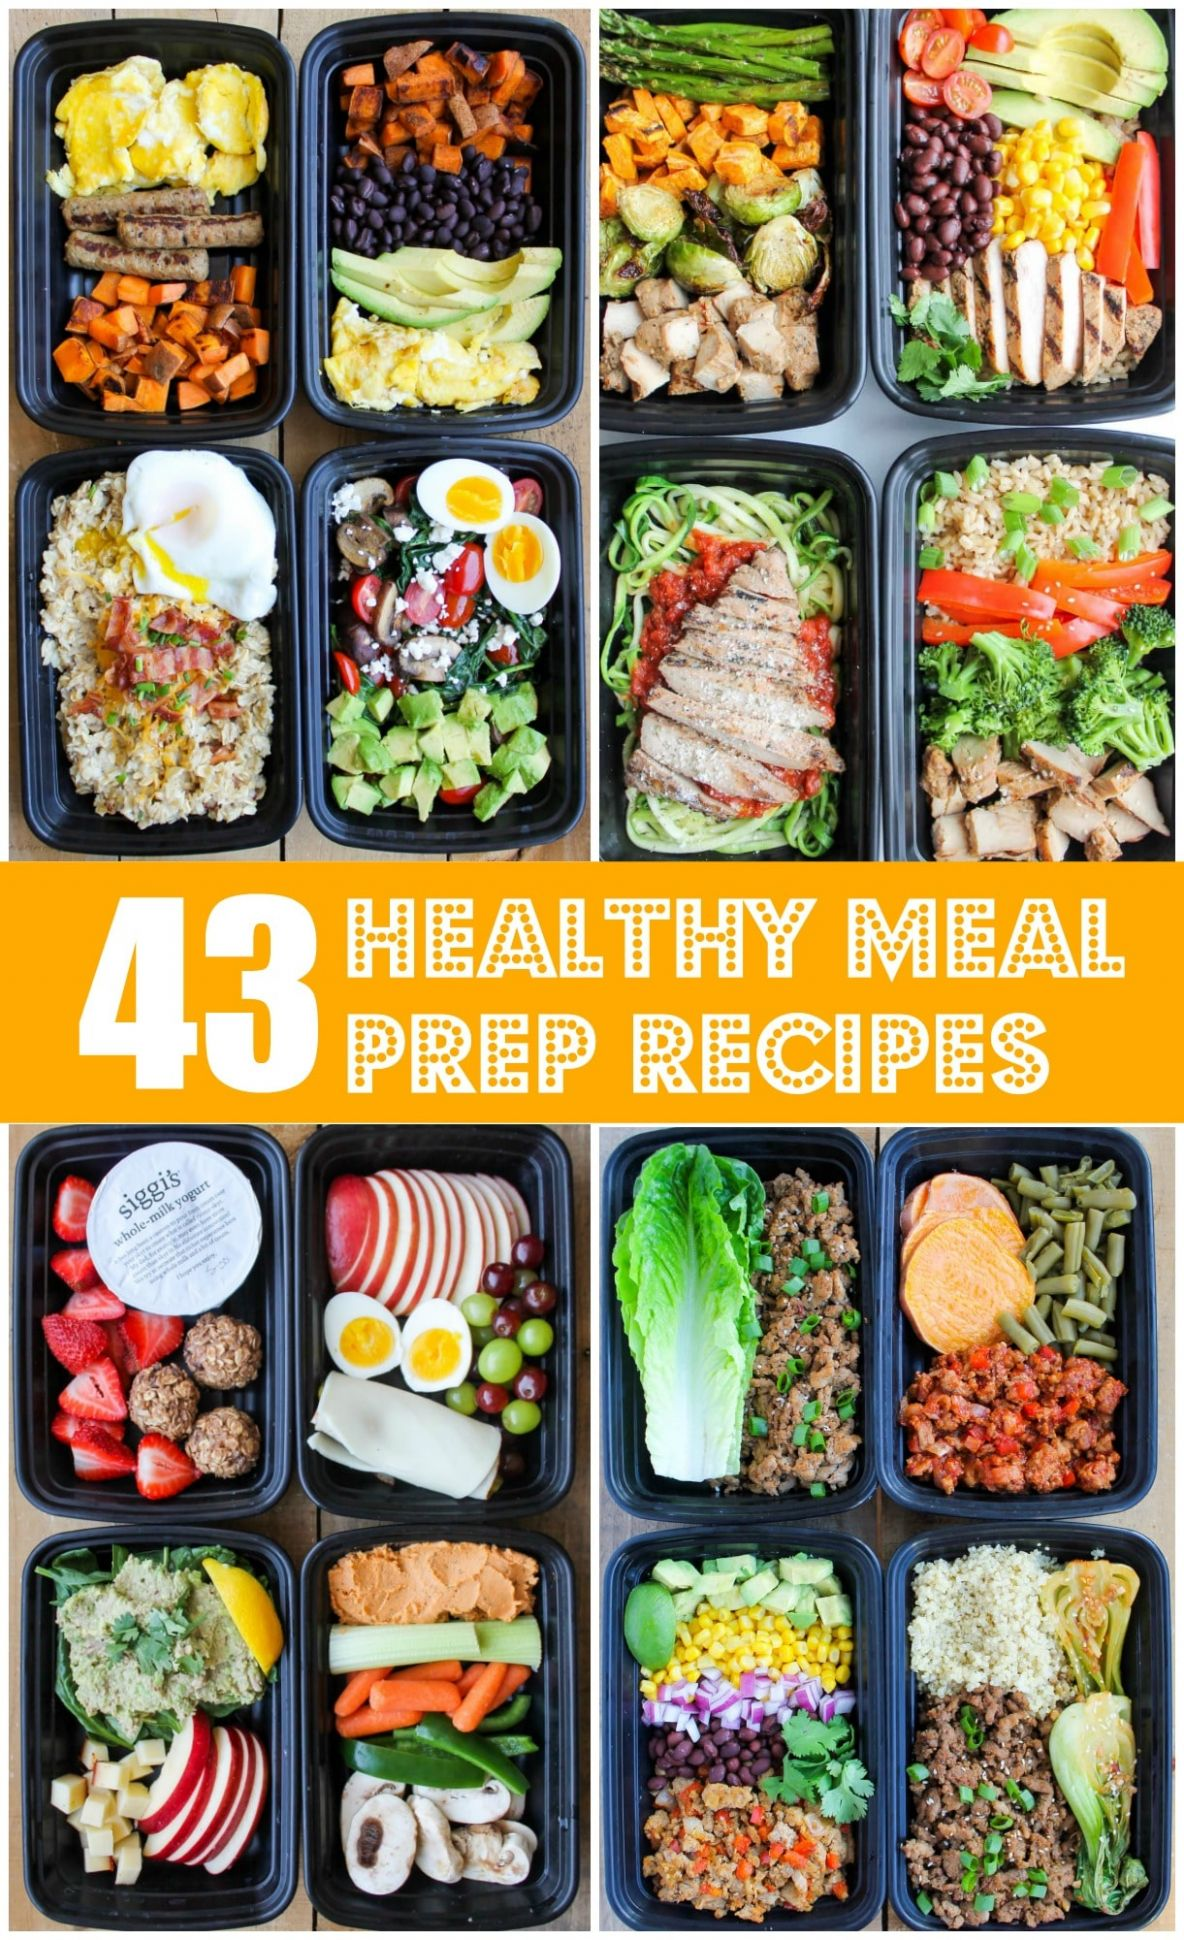 11 Healthy Meal Prep Recipes That'll Make Your Life Easier - Smile ...